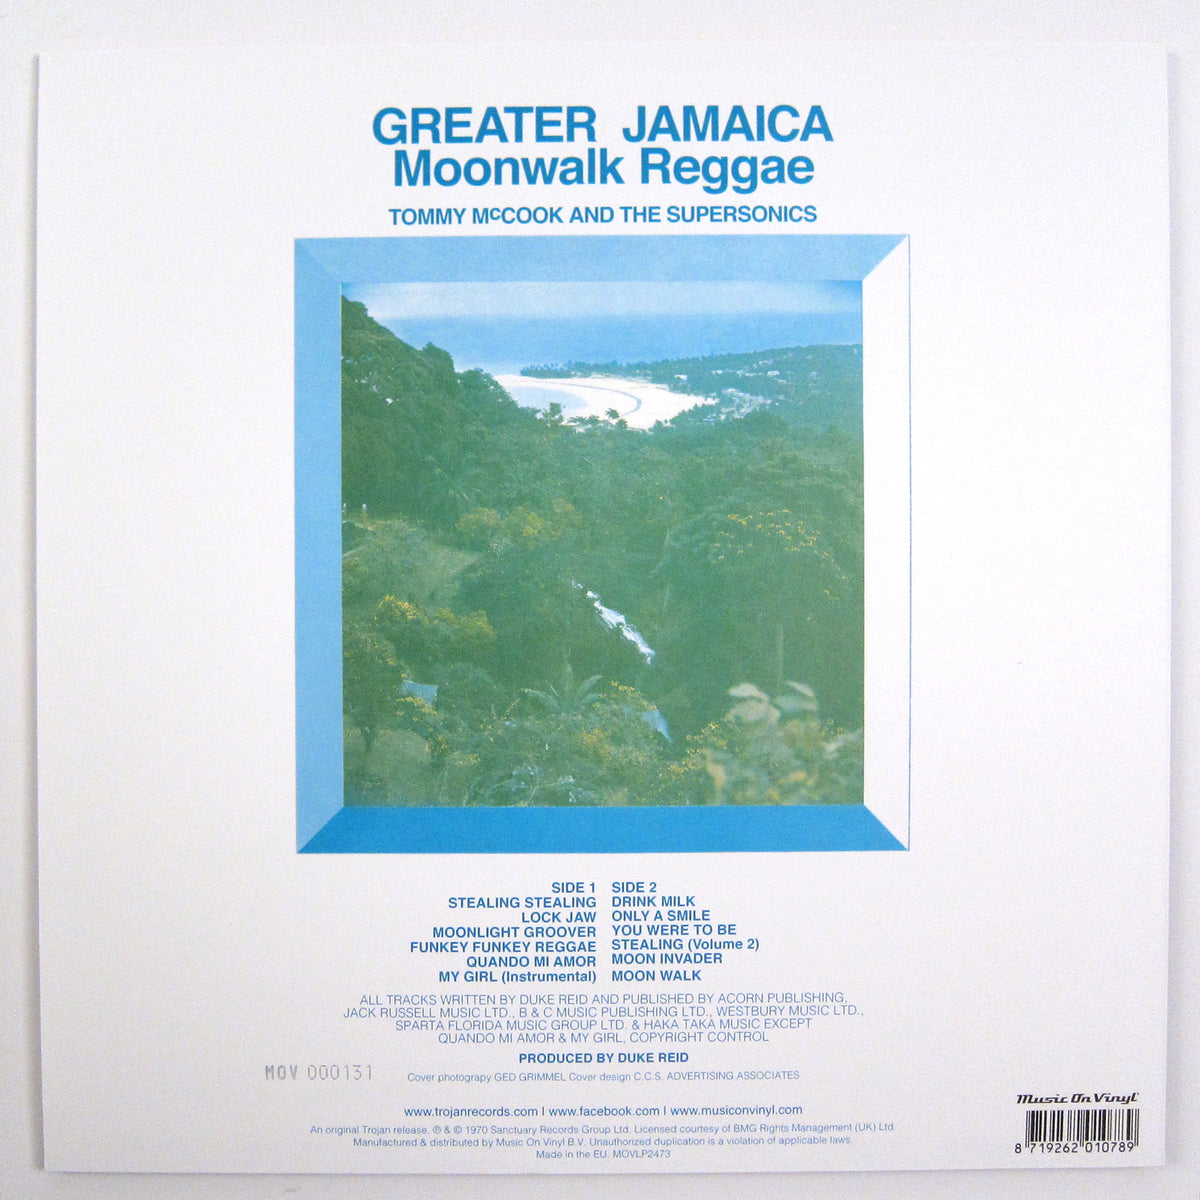 Tommy McCook & The Supersonics: Greater Jamaica Moonwalk